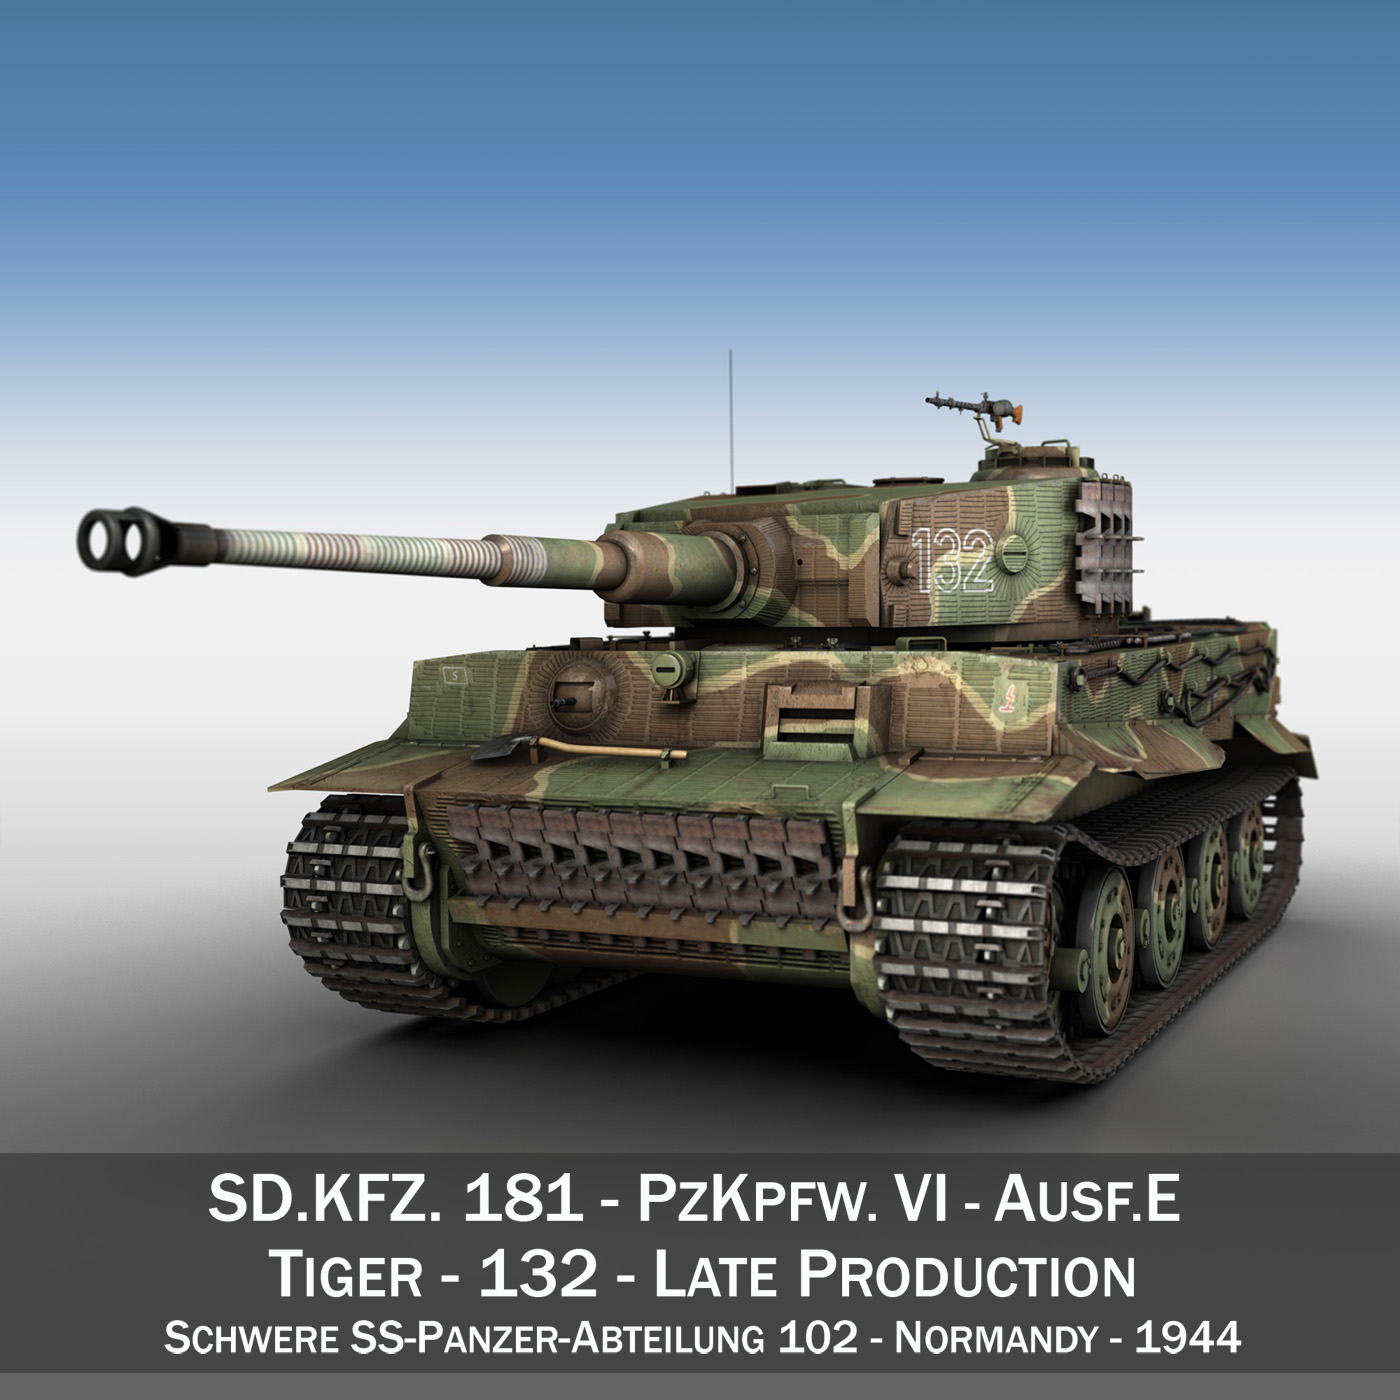 Panzer VI - Tiger - 132 - Late Production 3d model 3ds fbx c4d lwo obj 292965